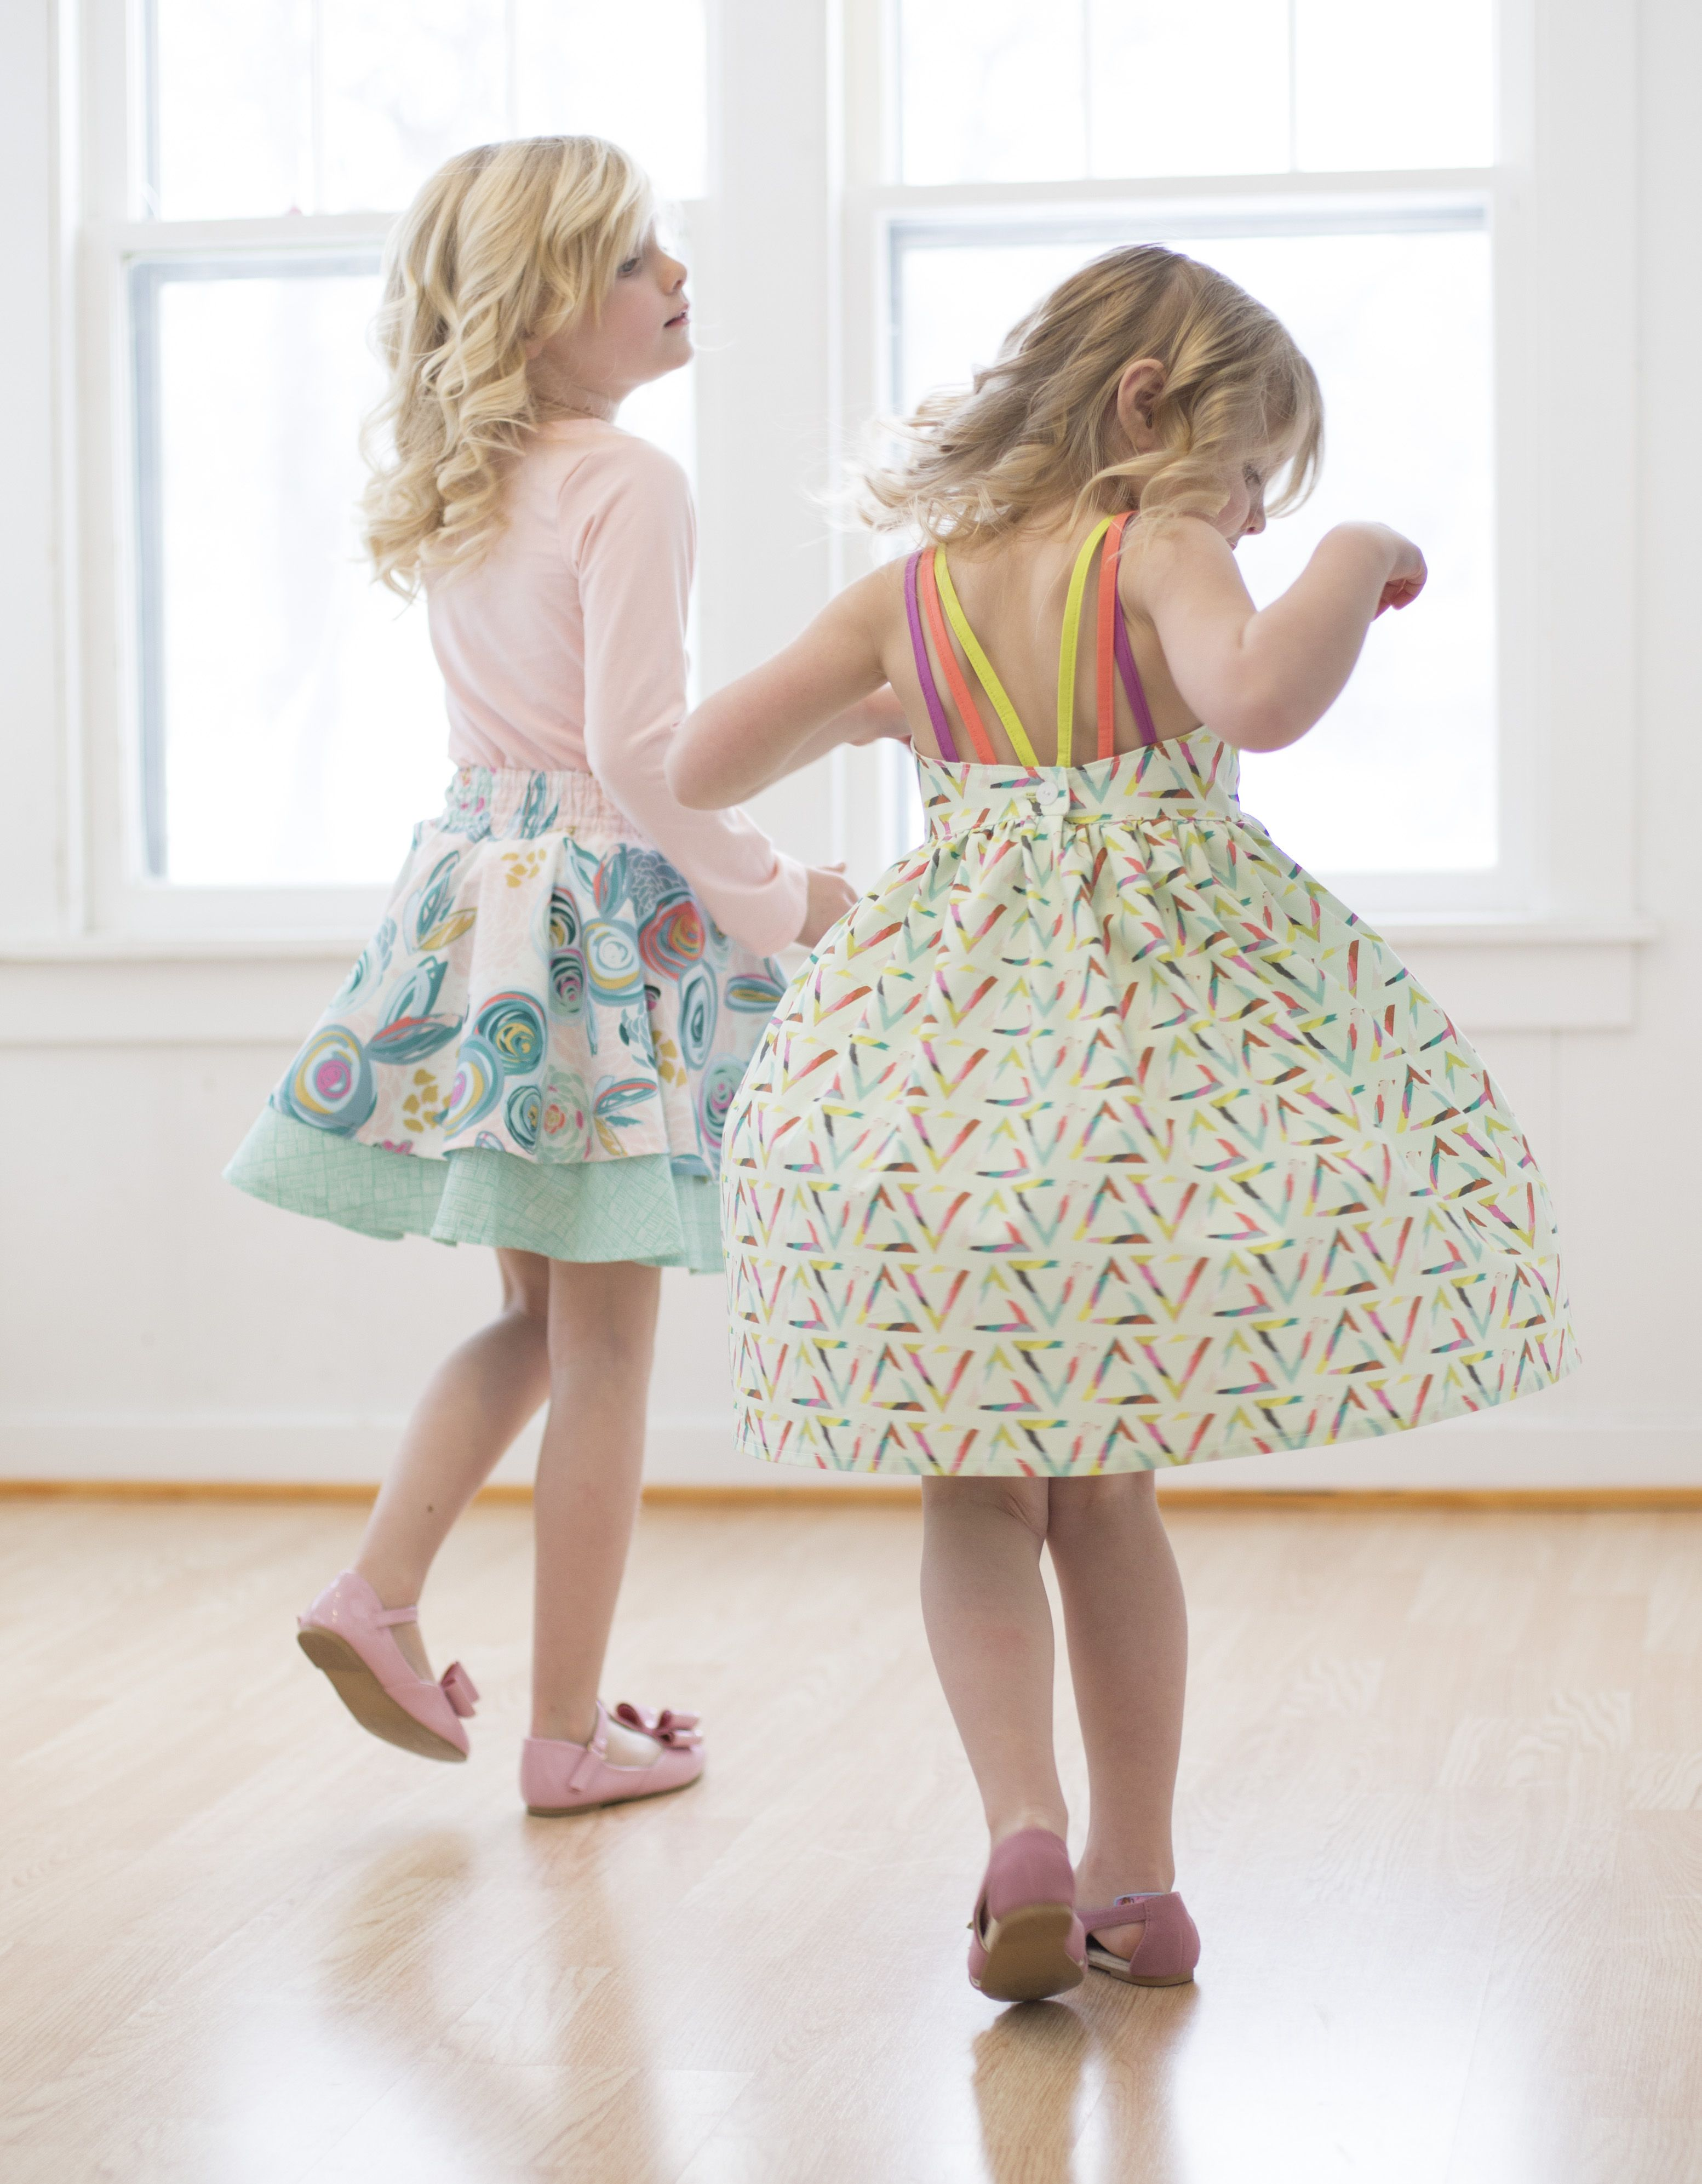 Coordinating play outfits from Simple Life Pattern Co.